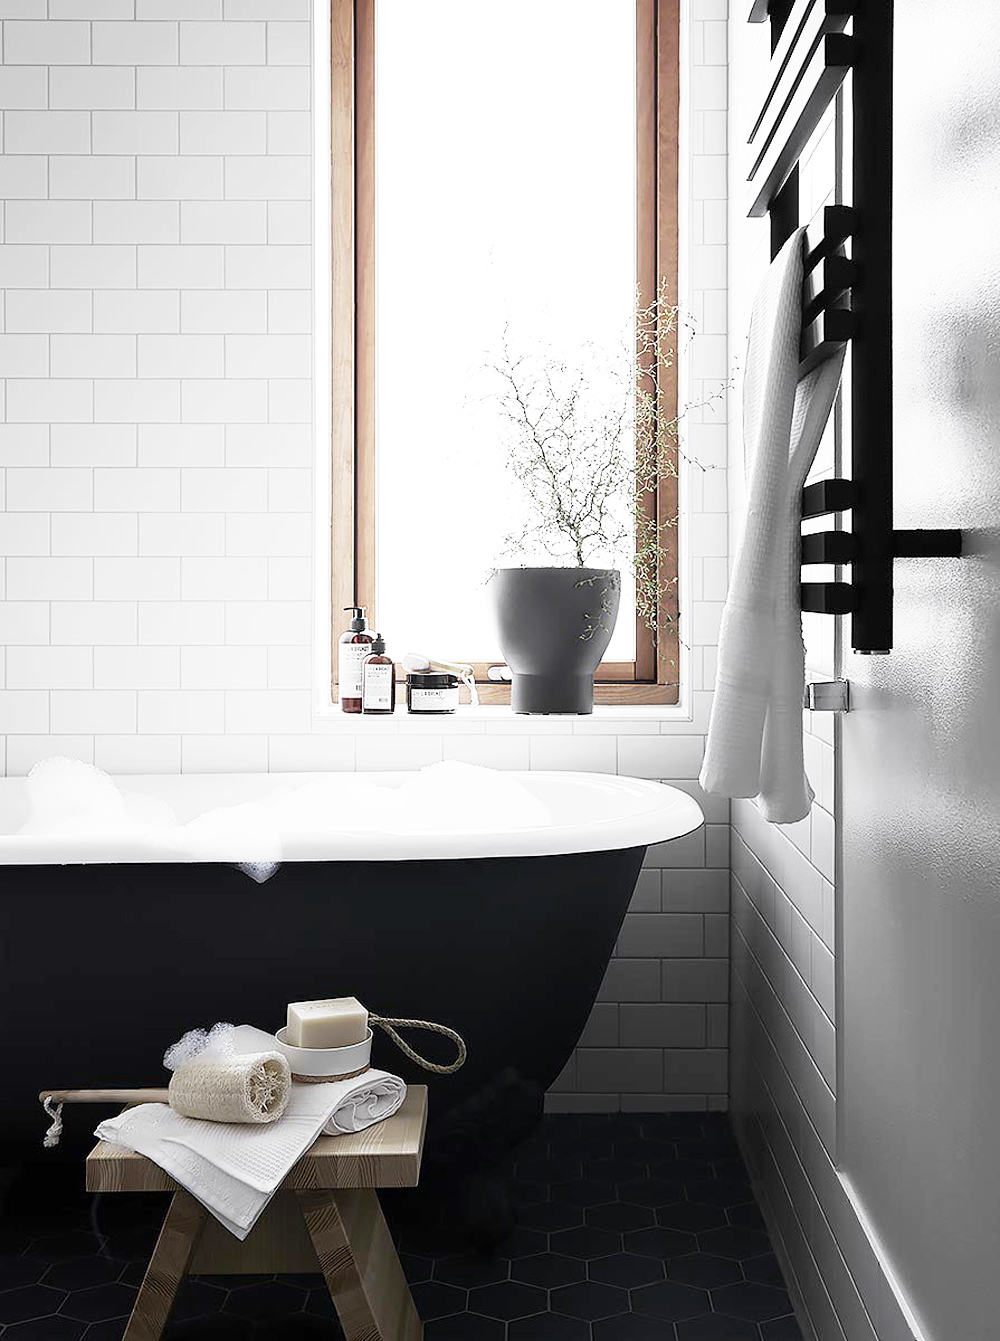 Alexandra Ogonowski, interiors, home, home inspiration, sunday sanctuary, oracle fox, scandinavian house, bathroom